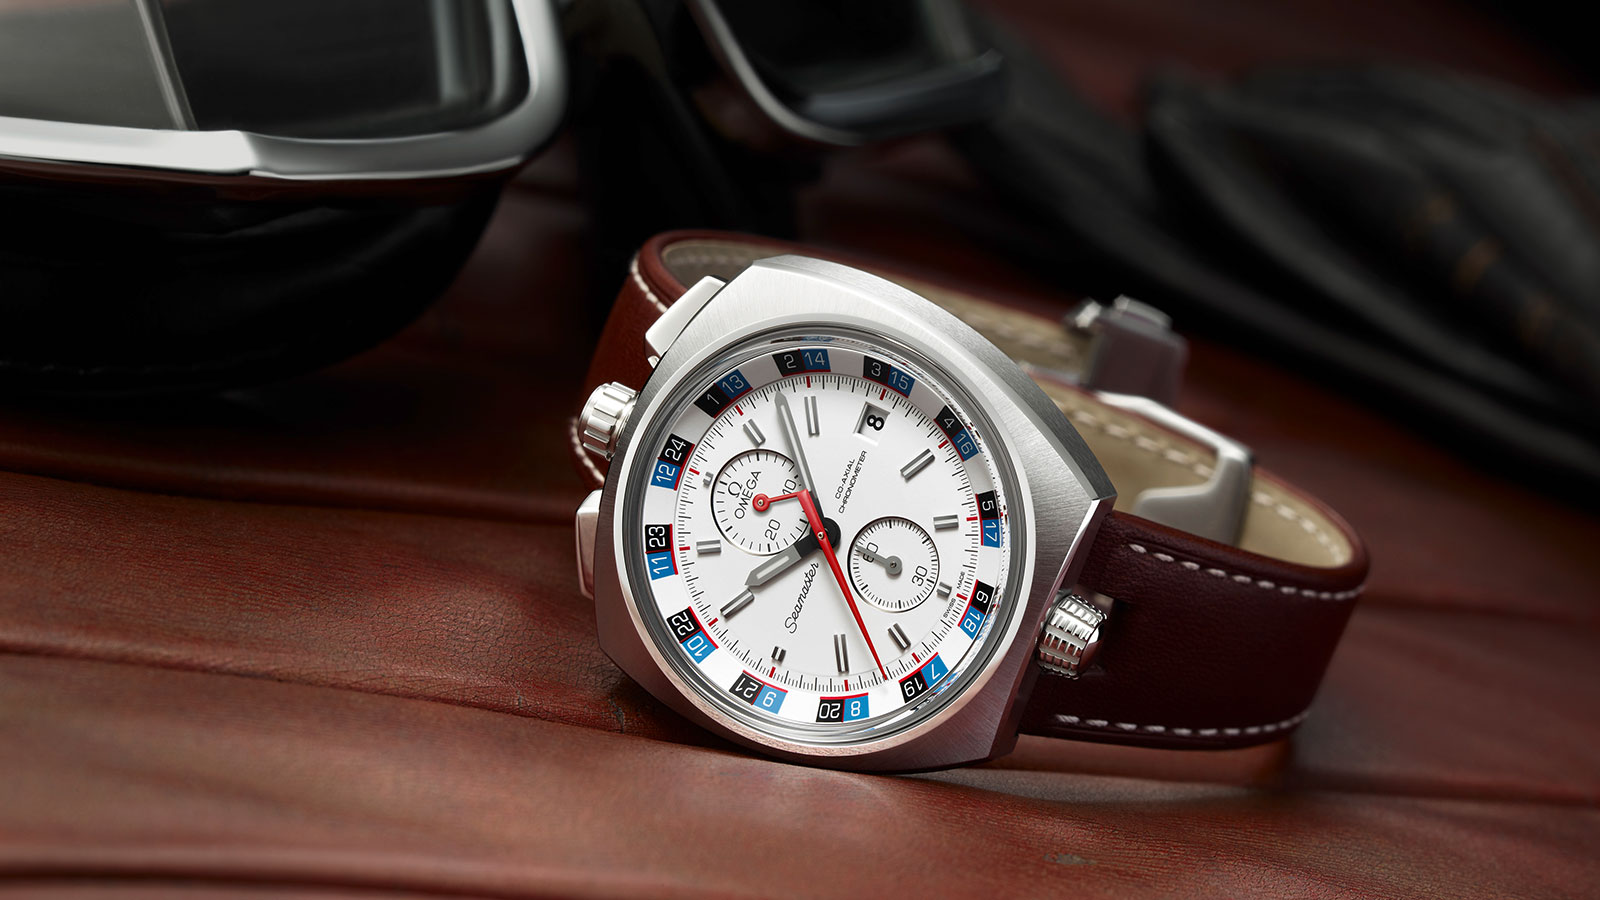 Seamaster ブルヘッド Bullhead Co‑Axial Chronograph 43 x 43 mm ウォッチ - 225.12.43.50.04.001